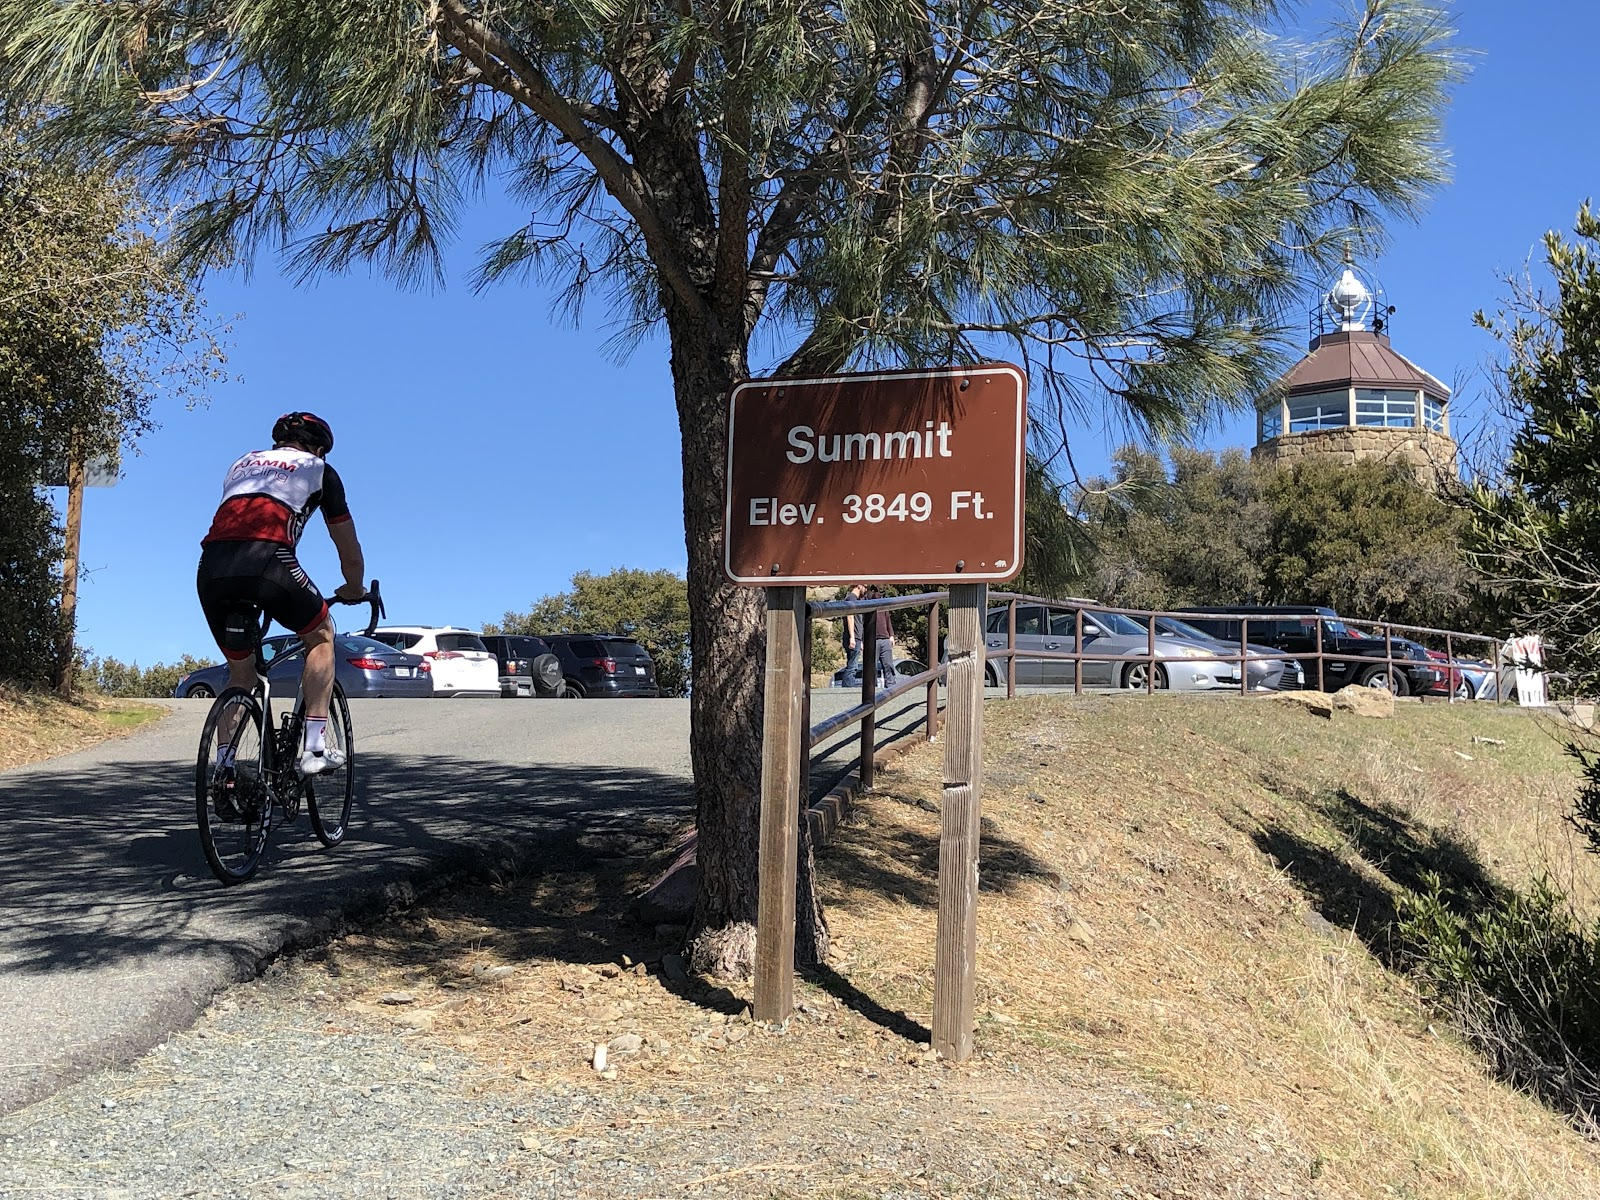 Cycling Mt. Diablo - cyclist on bike riding past summit sign - visitor center and beacon